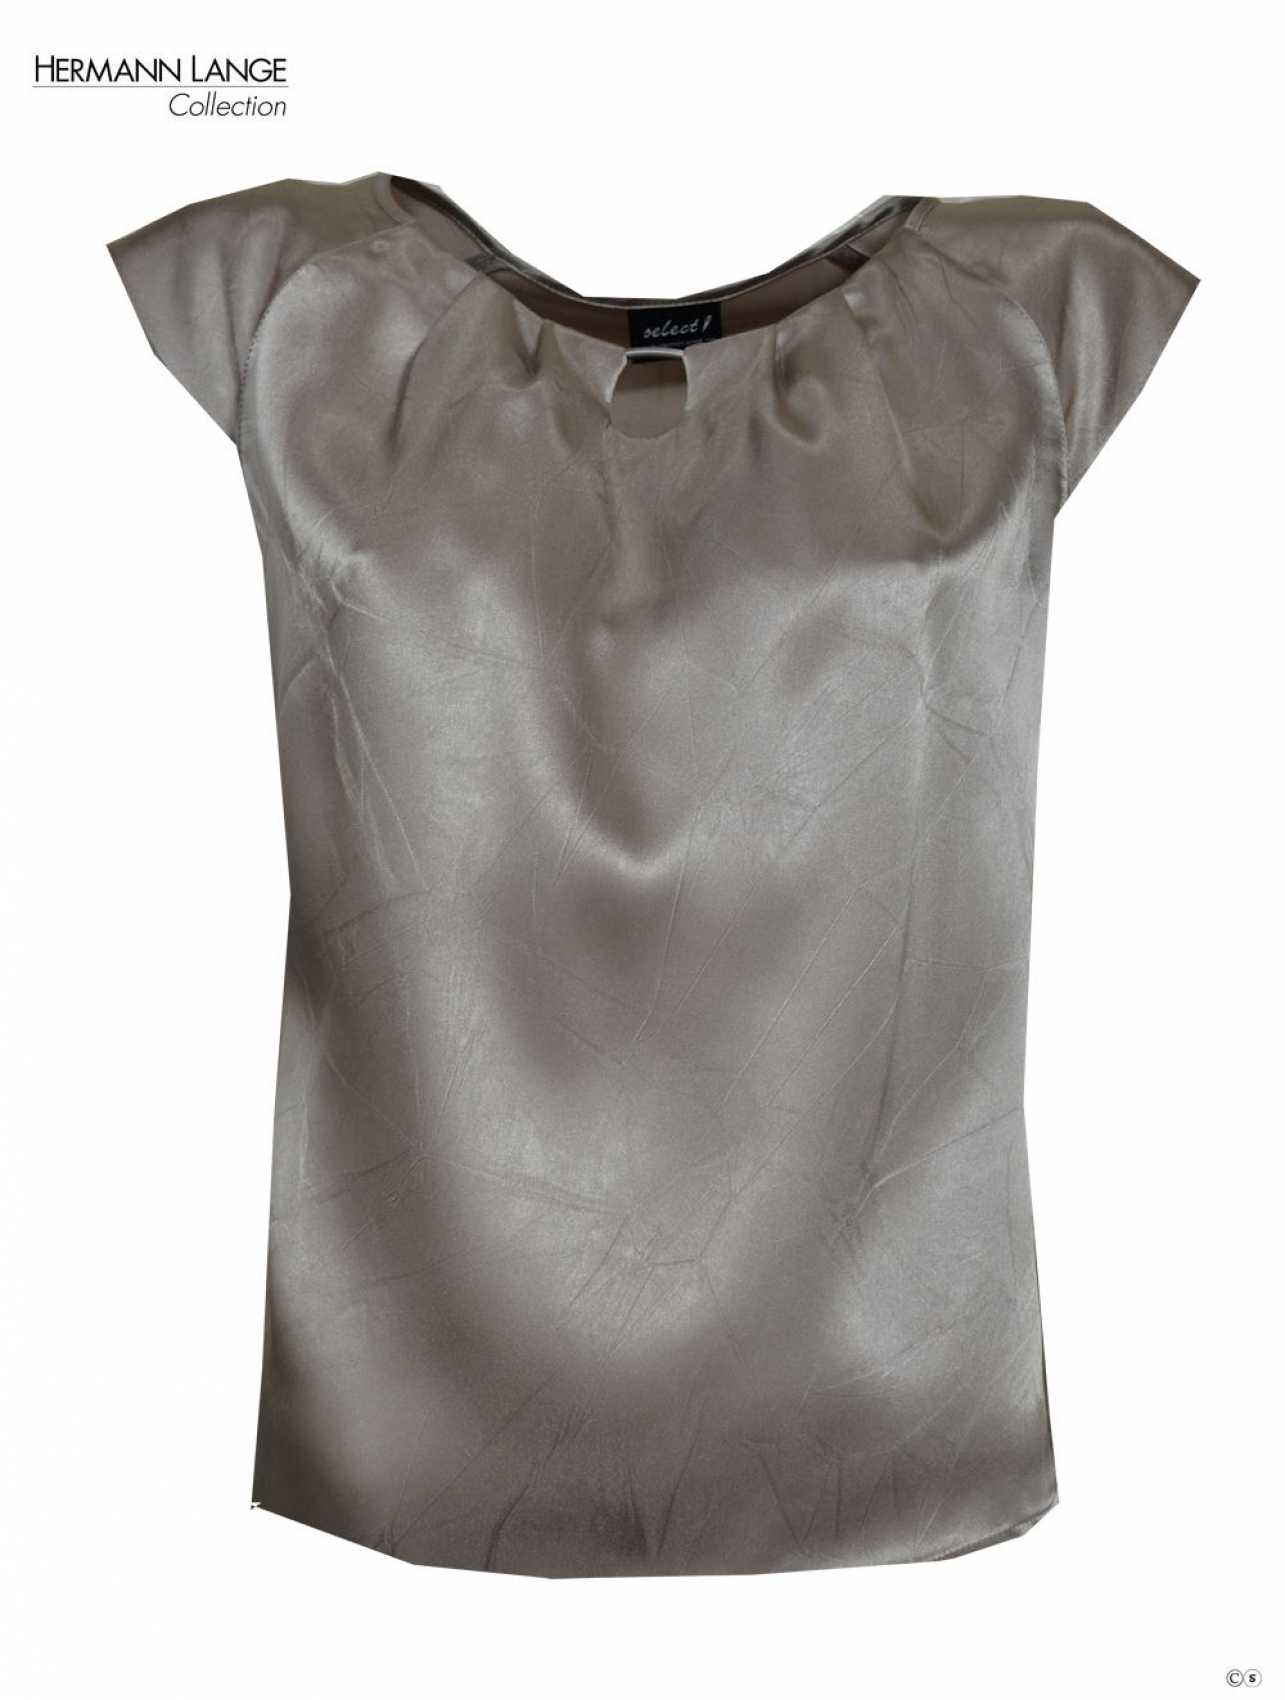 Hermann Lange Top / Blouse-Shirt 6060-1200